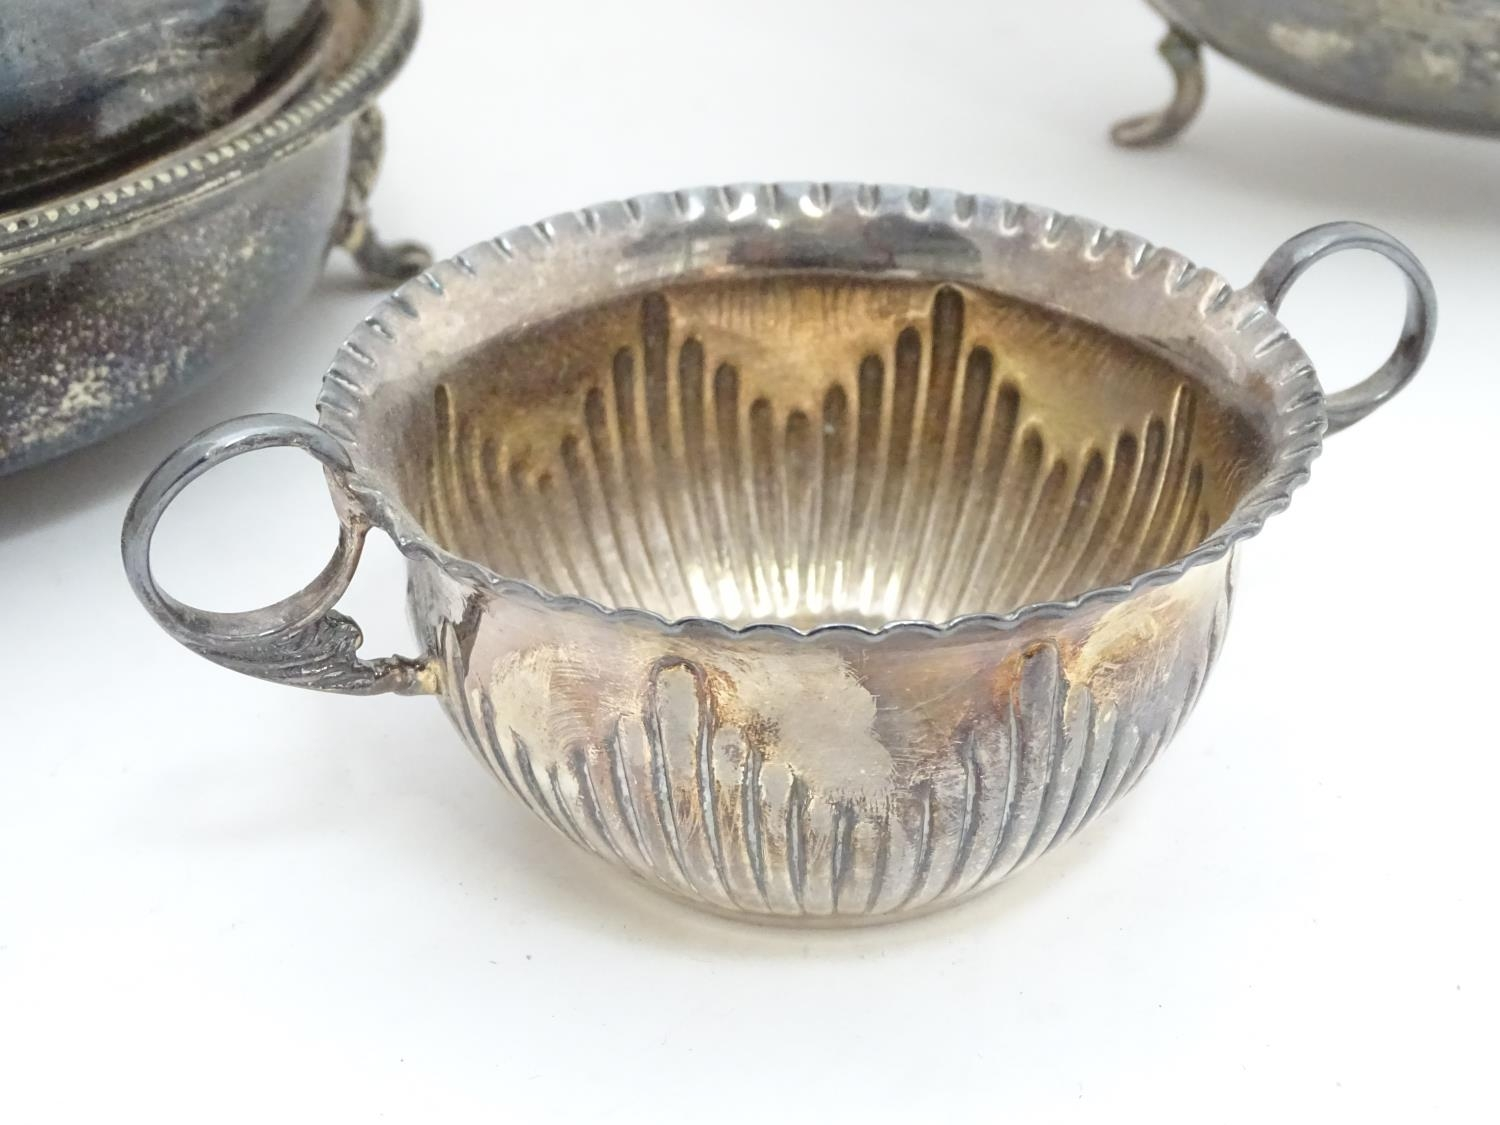 A quantity of silver plated items to include a biscuit barrel, toast rack, sauce boat, tongs, etc. - Image 8 of 30